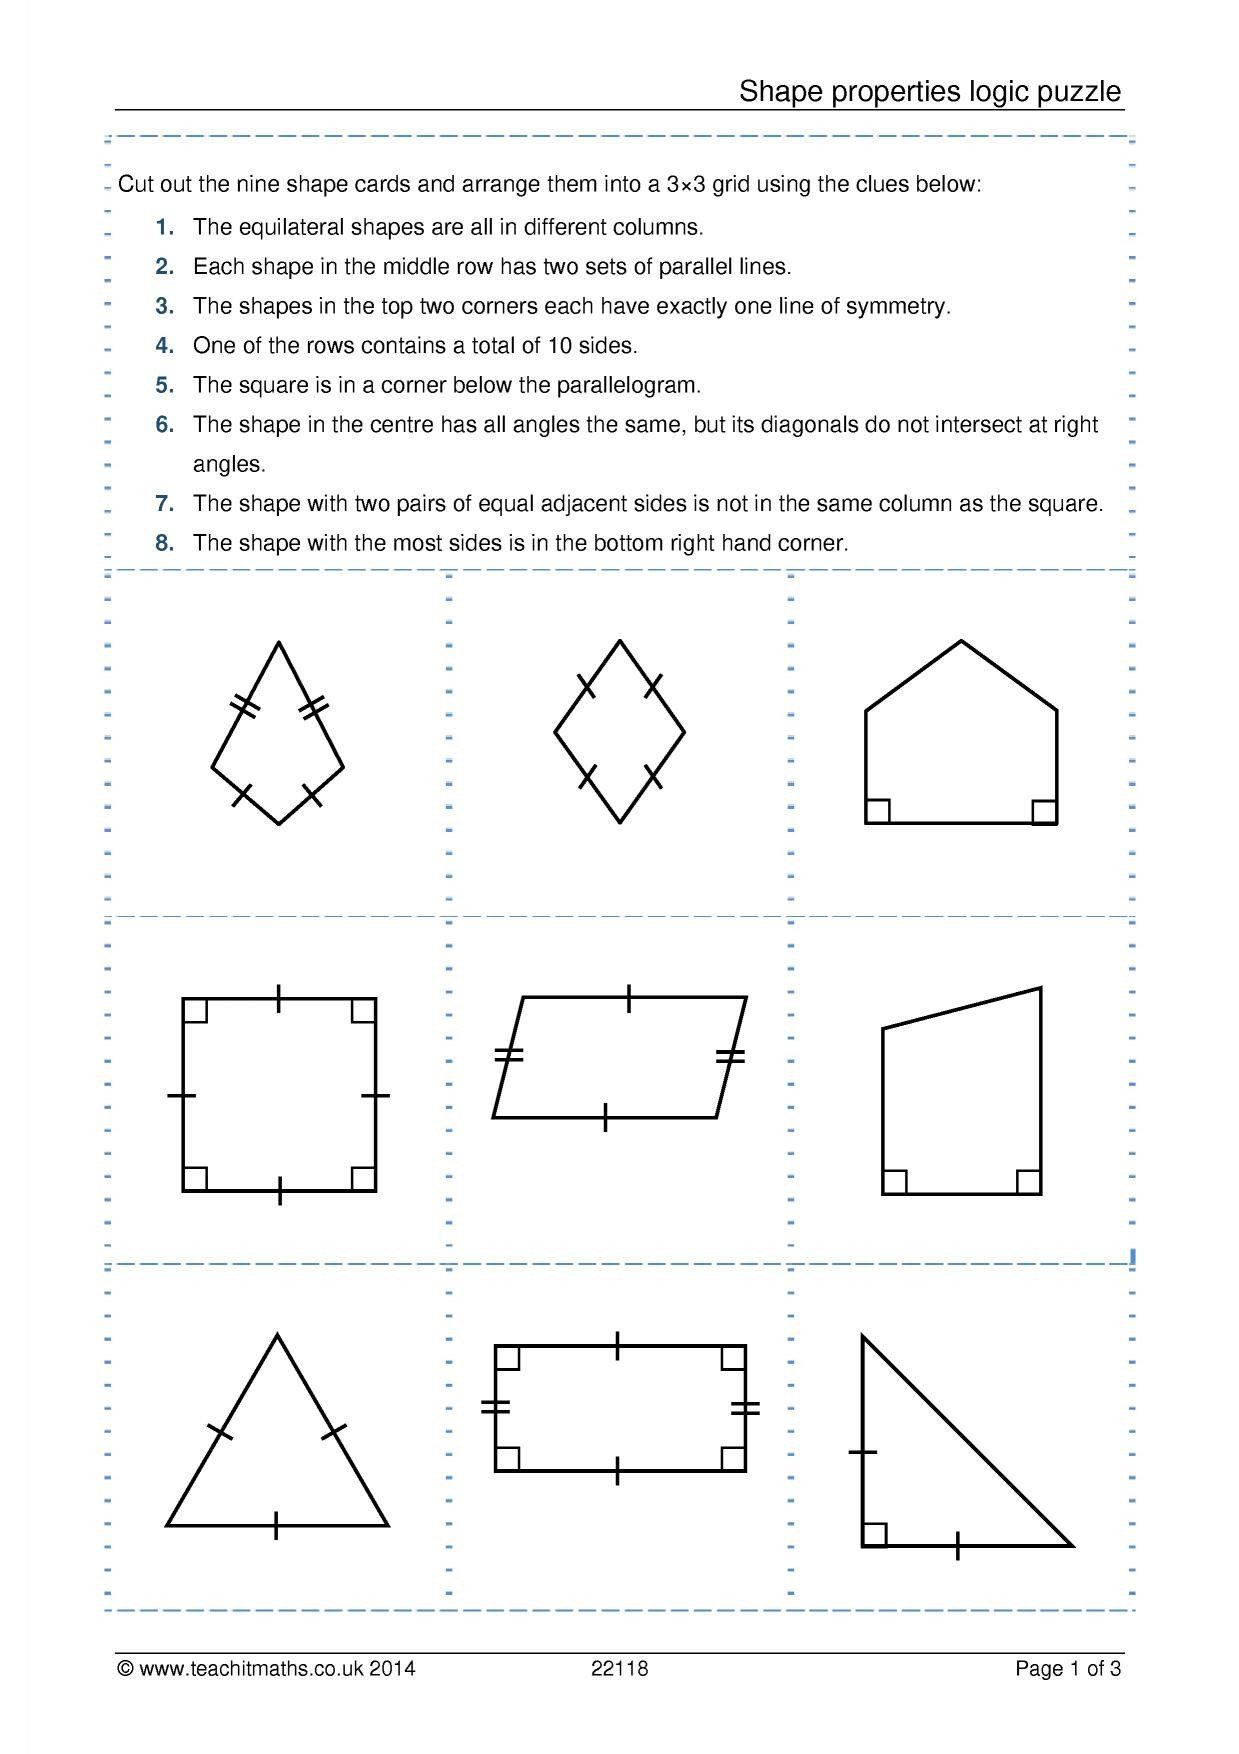 Quadrilaterals Worksheets 5th Grade Triangle And Quadrilateral Properties Key In 2020 Shapes Worksheets Shapes Worksheet Kindergarten Kids Worksheets Printables